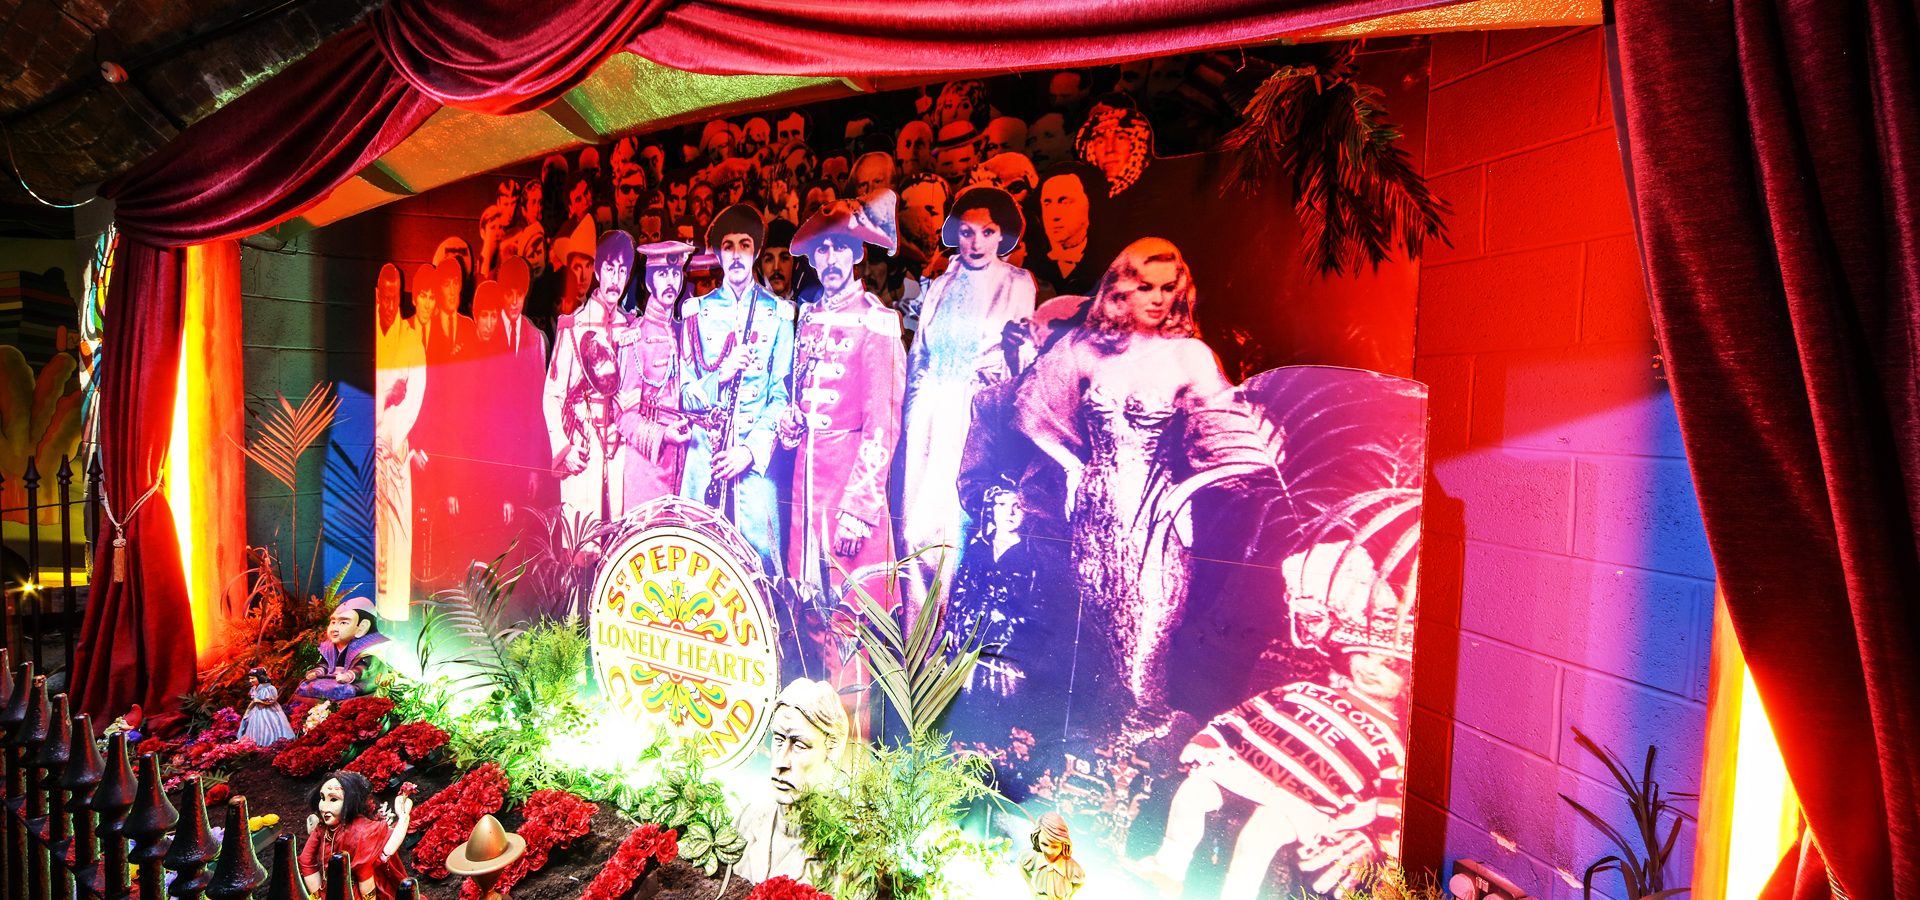 Song Facts: Sgt. Pepper's Lonely Hearts Club Band